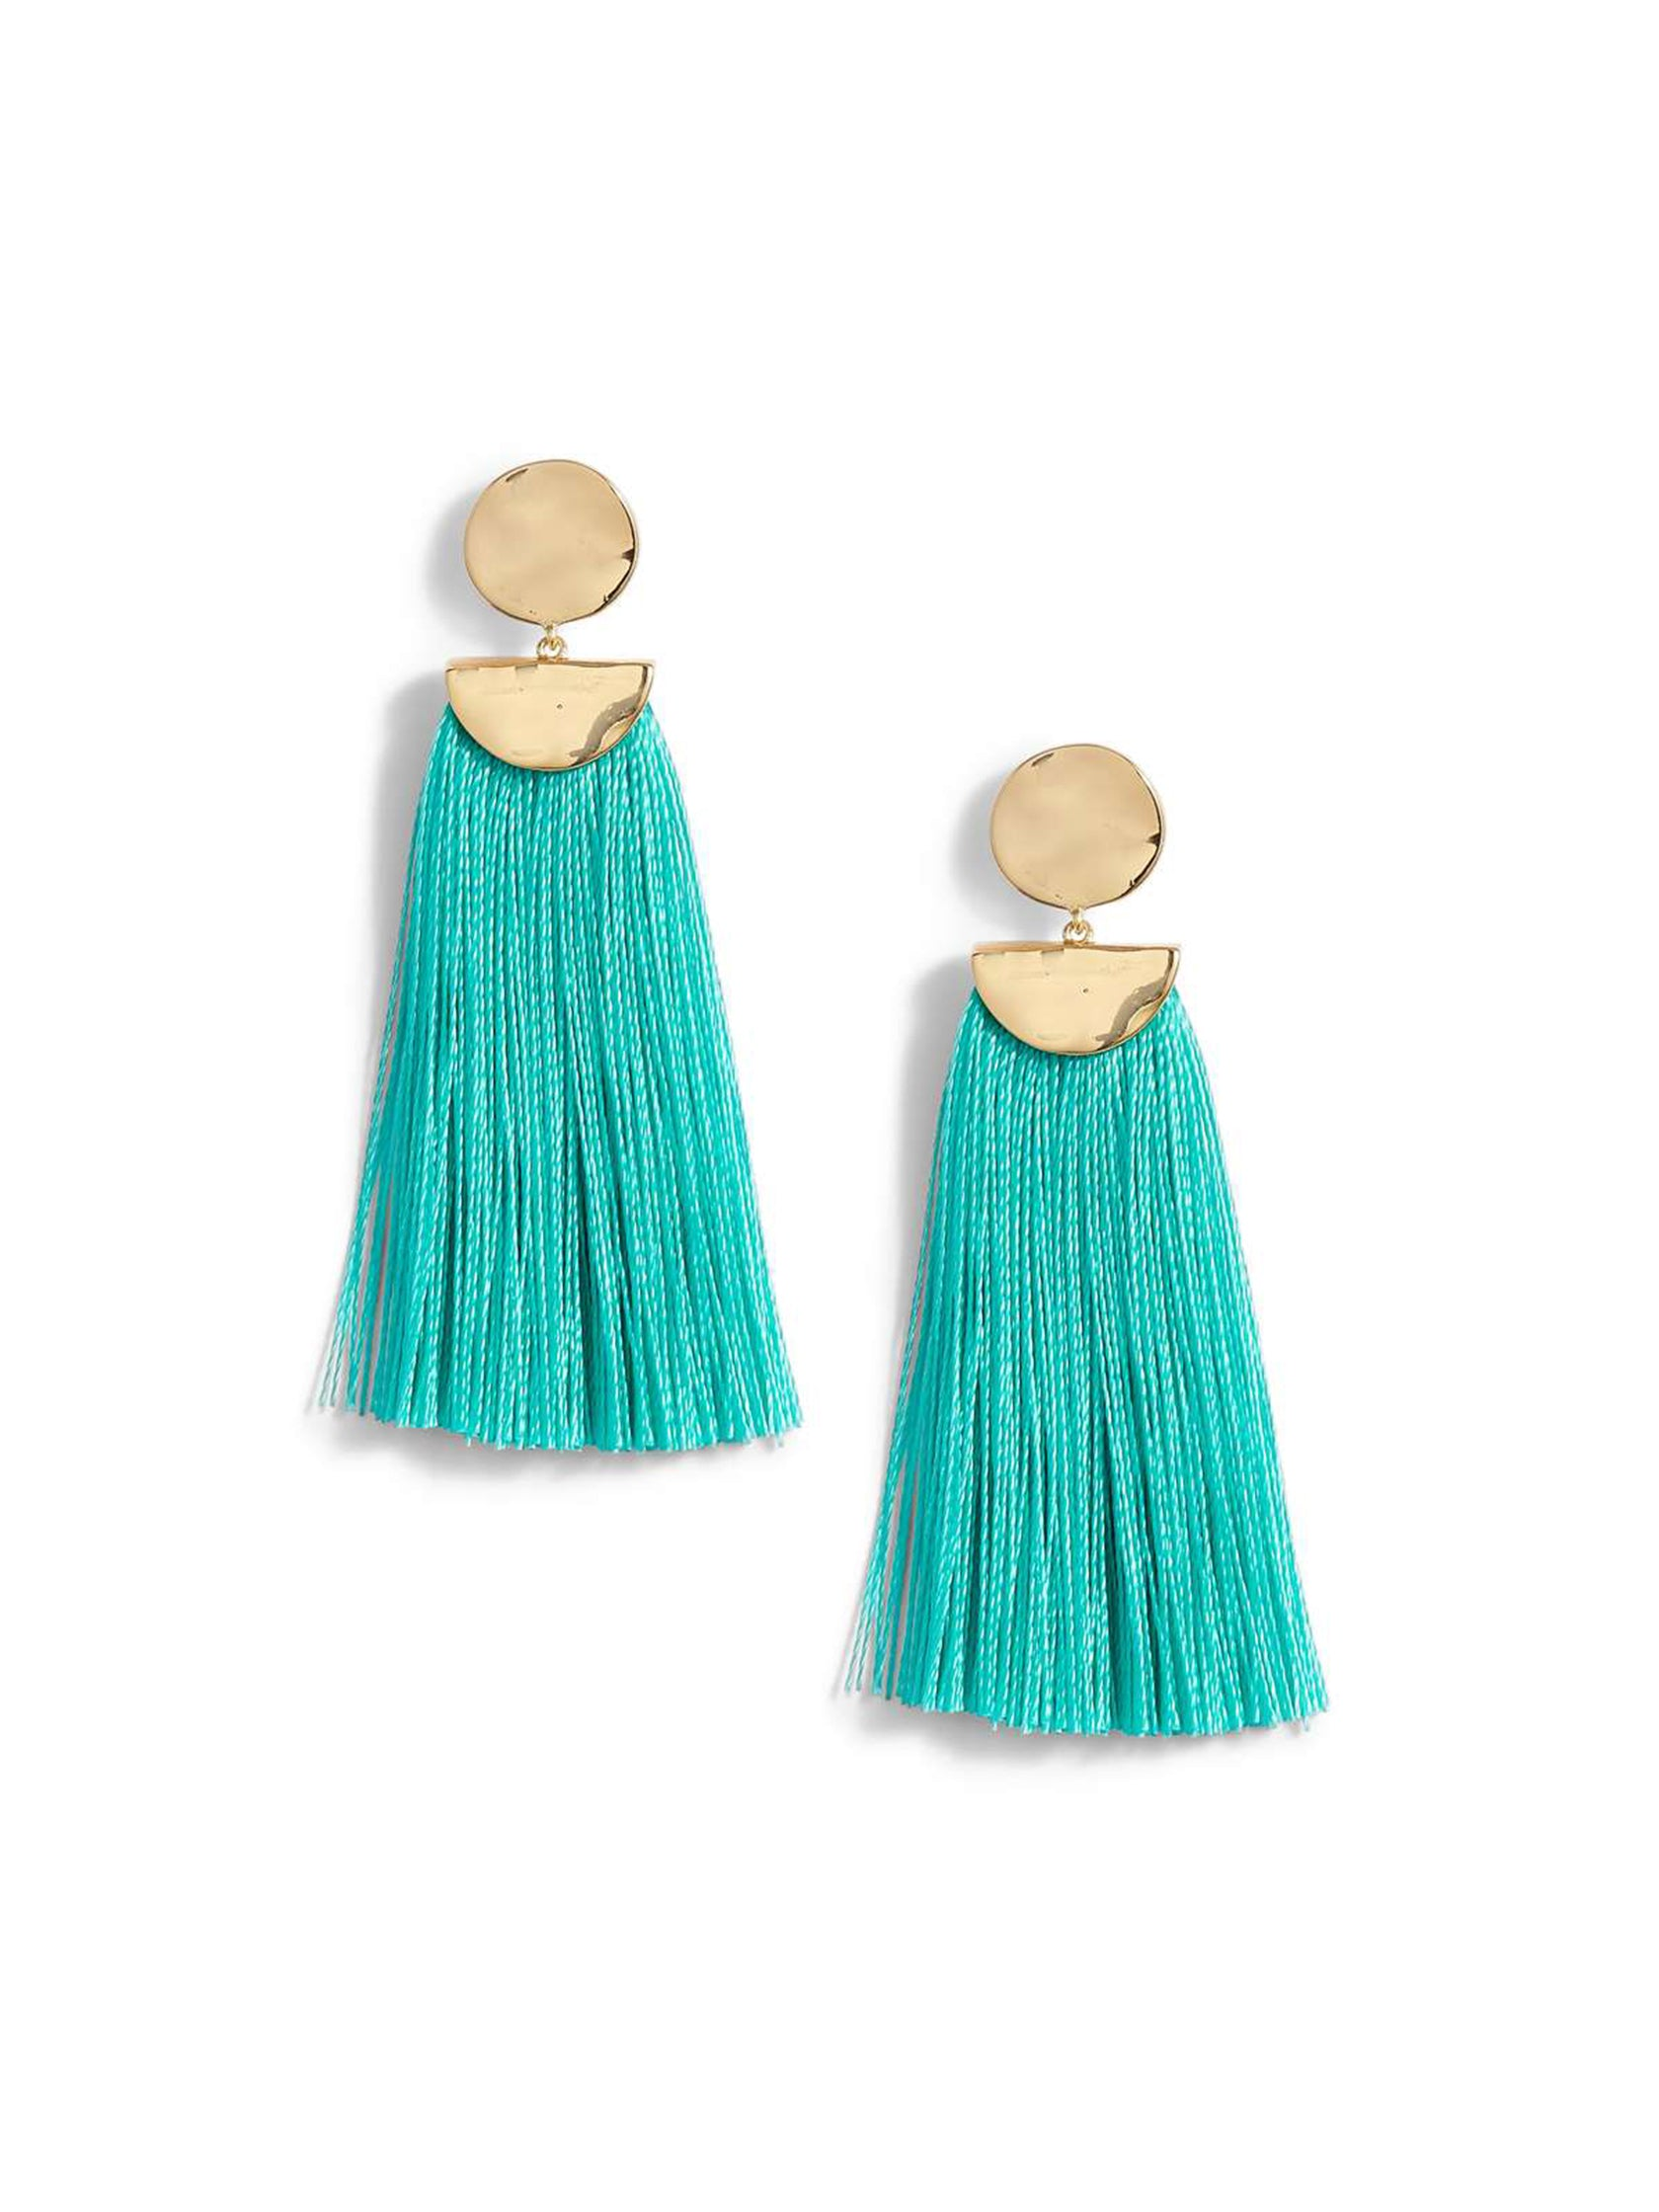 Girl wearing a earrings rental from Gorjana called Havana Circle Tassel Earrings